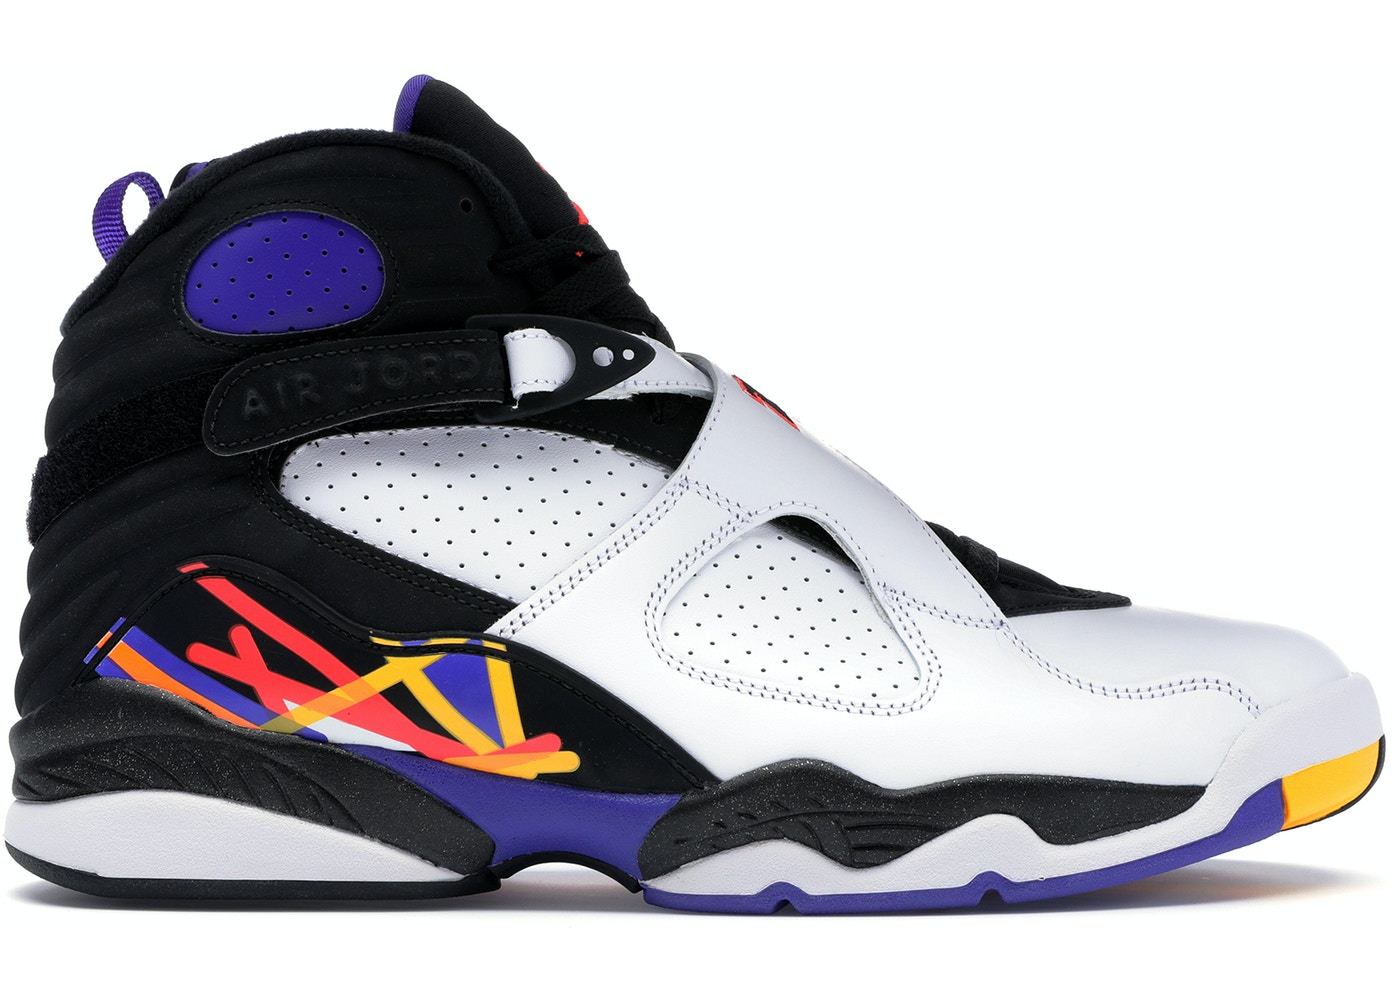 super popular 4bd50 0f08f Buy Air Jordan 8 Shoes   Deadstock Sneakers